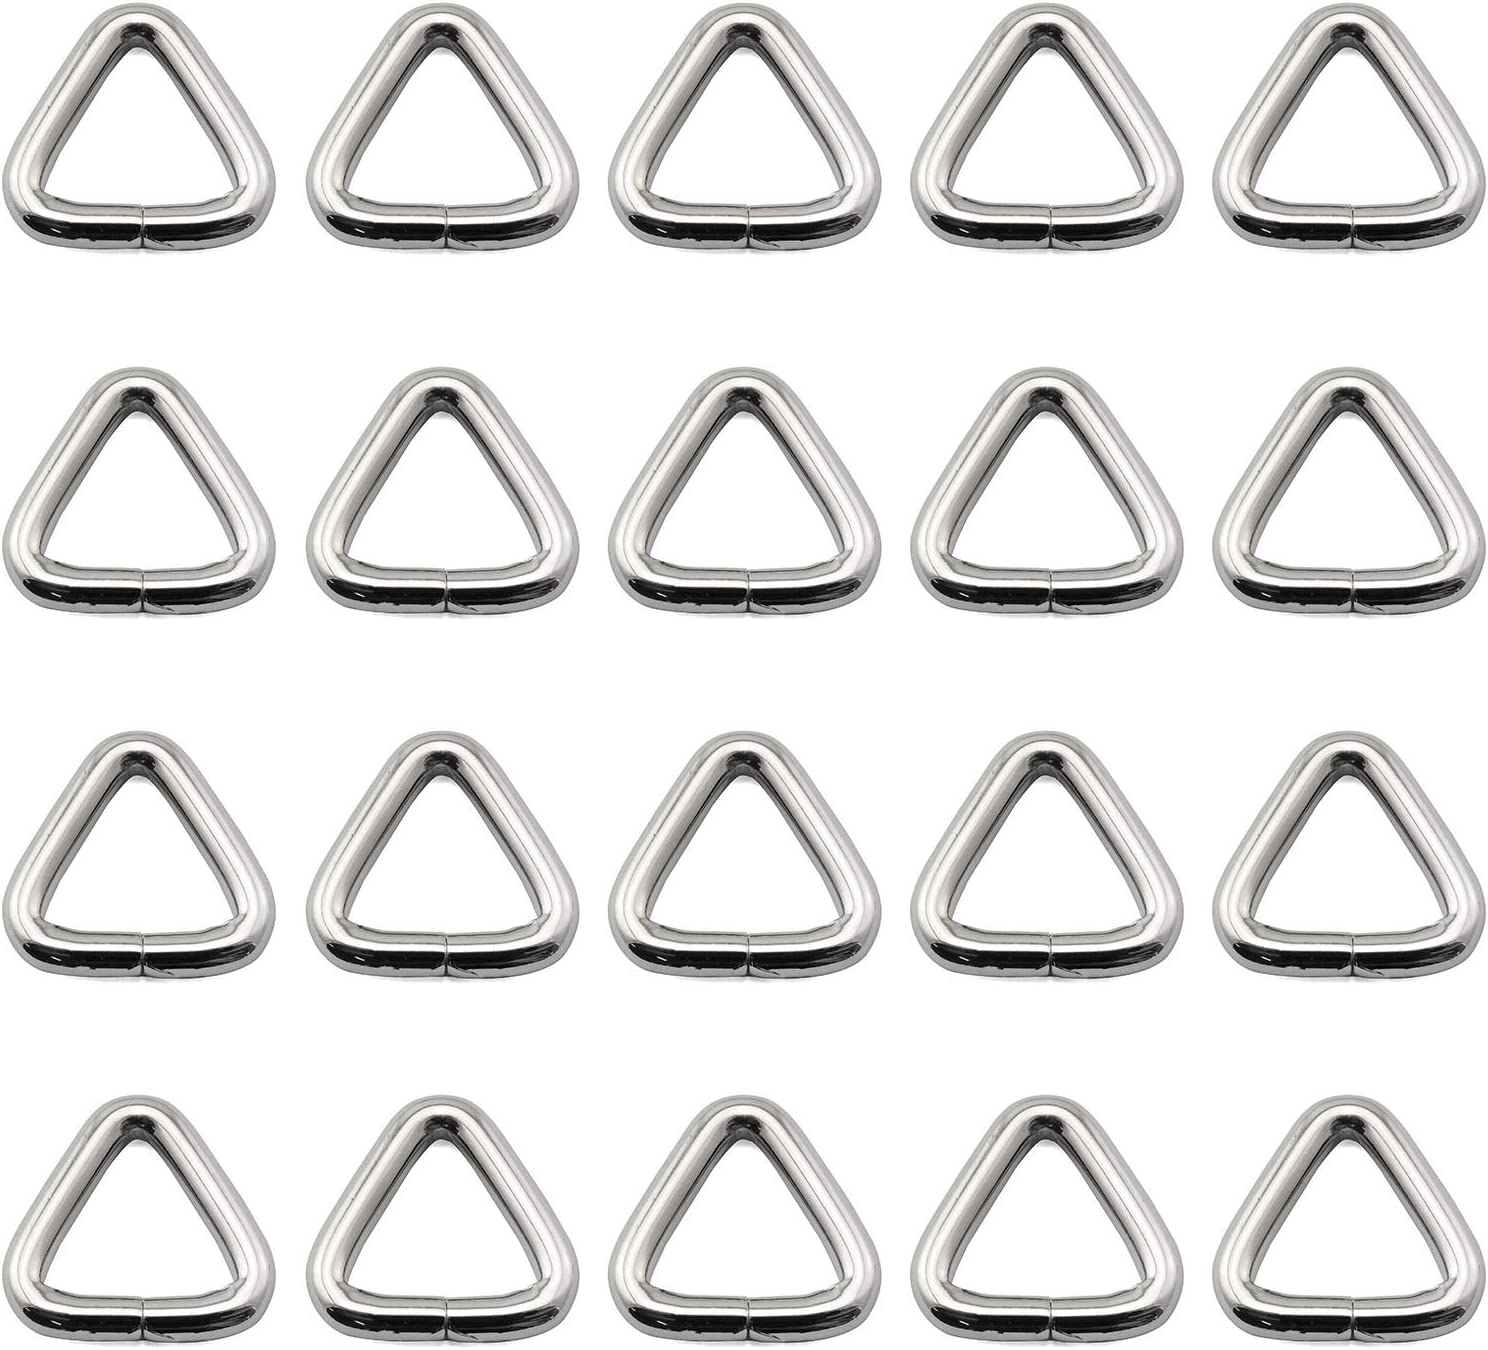 Magicshell Triangle Ring 20PCS 20mm/0.79inch Silver Unwelded Me